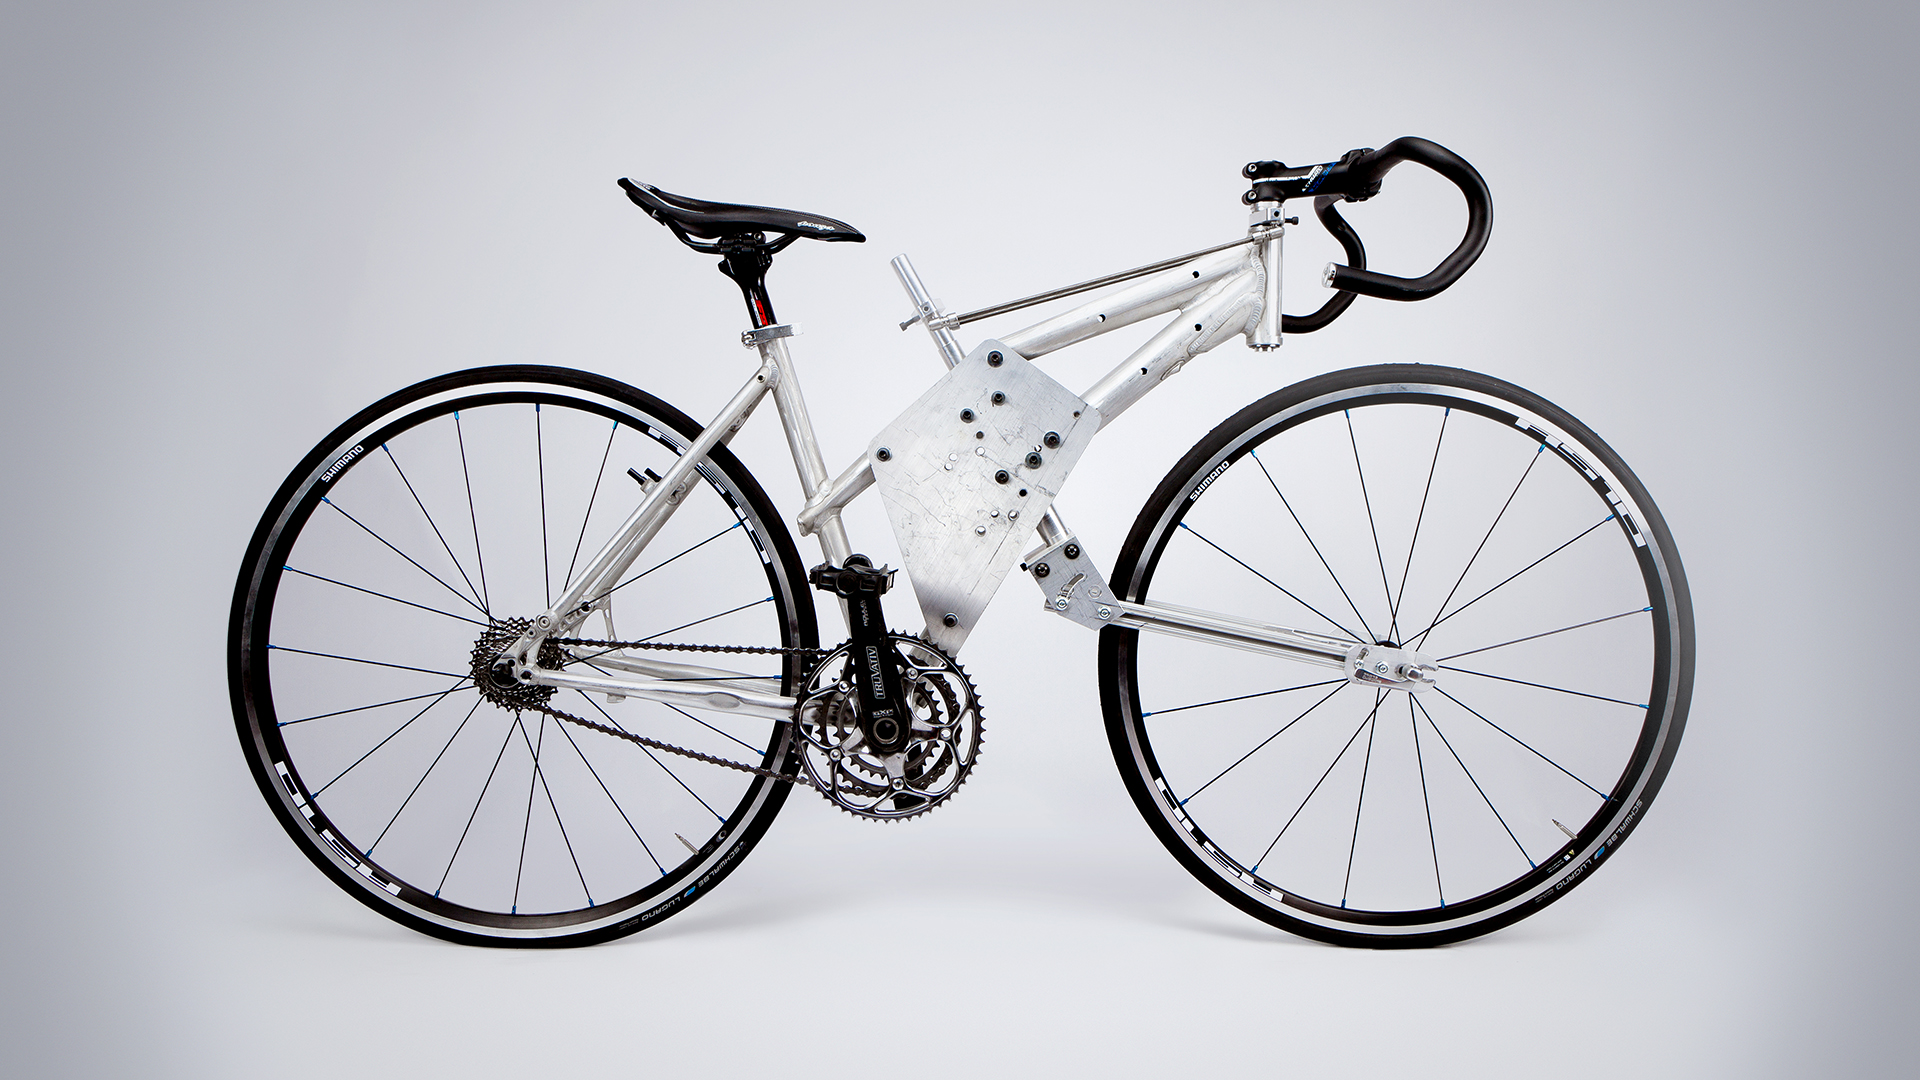 priority_designs_bicycle_design_engineering_and_development_consulting_004